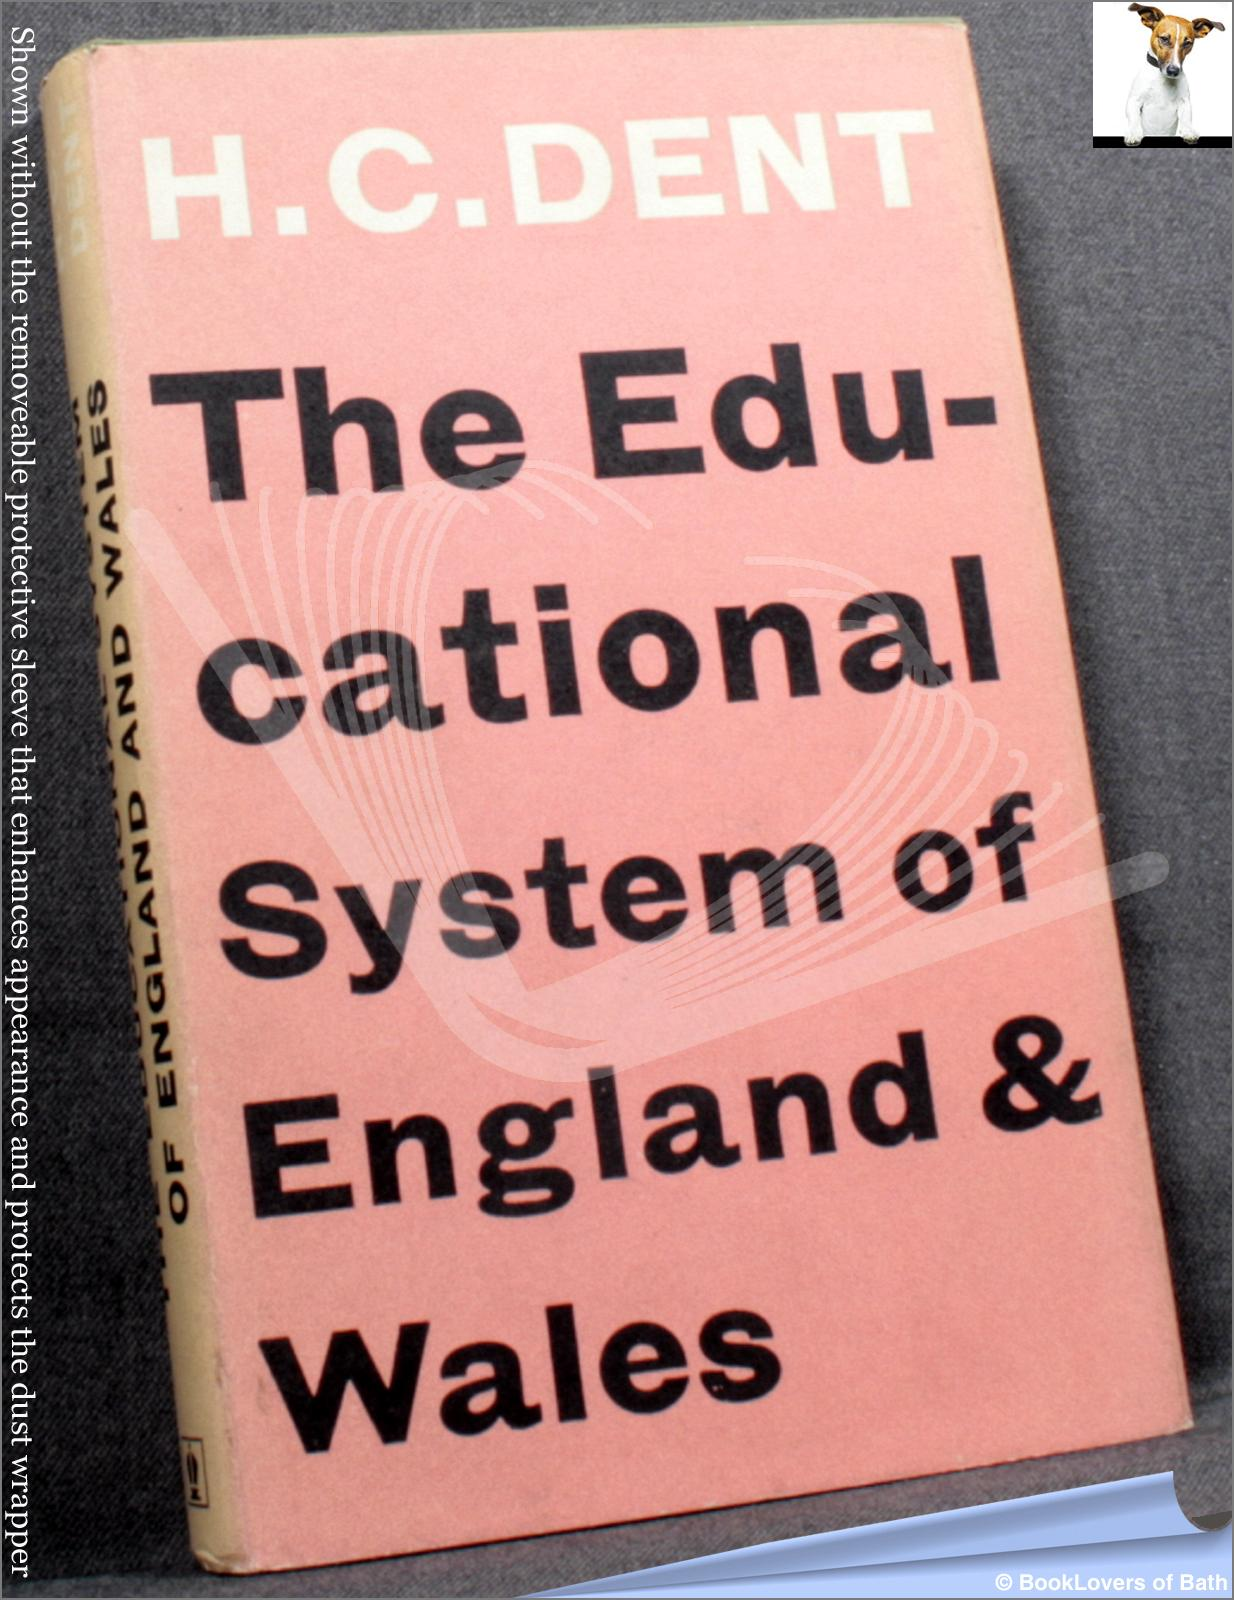 The Educational System of England and Wales - H. C. Dent